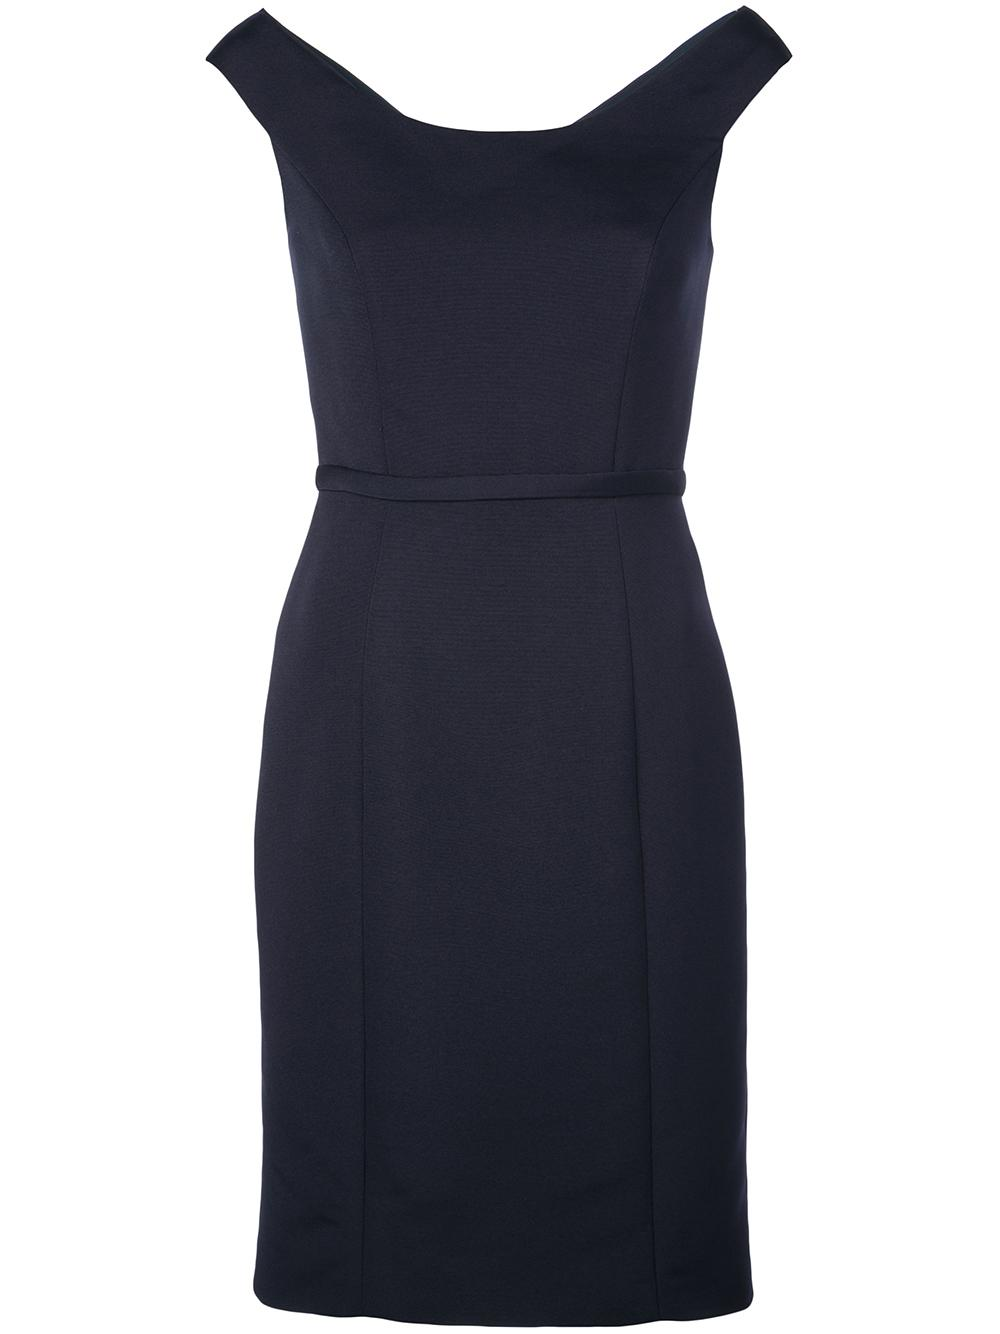 Soft Faille Bateau Neck Dress With Back Button Detail Item # LW148